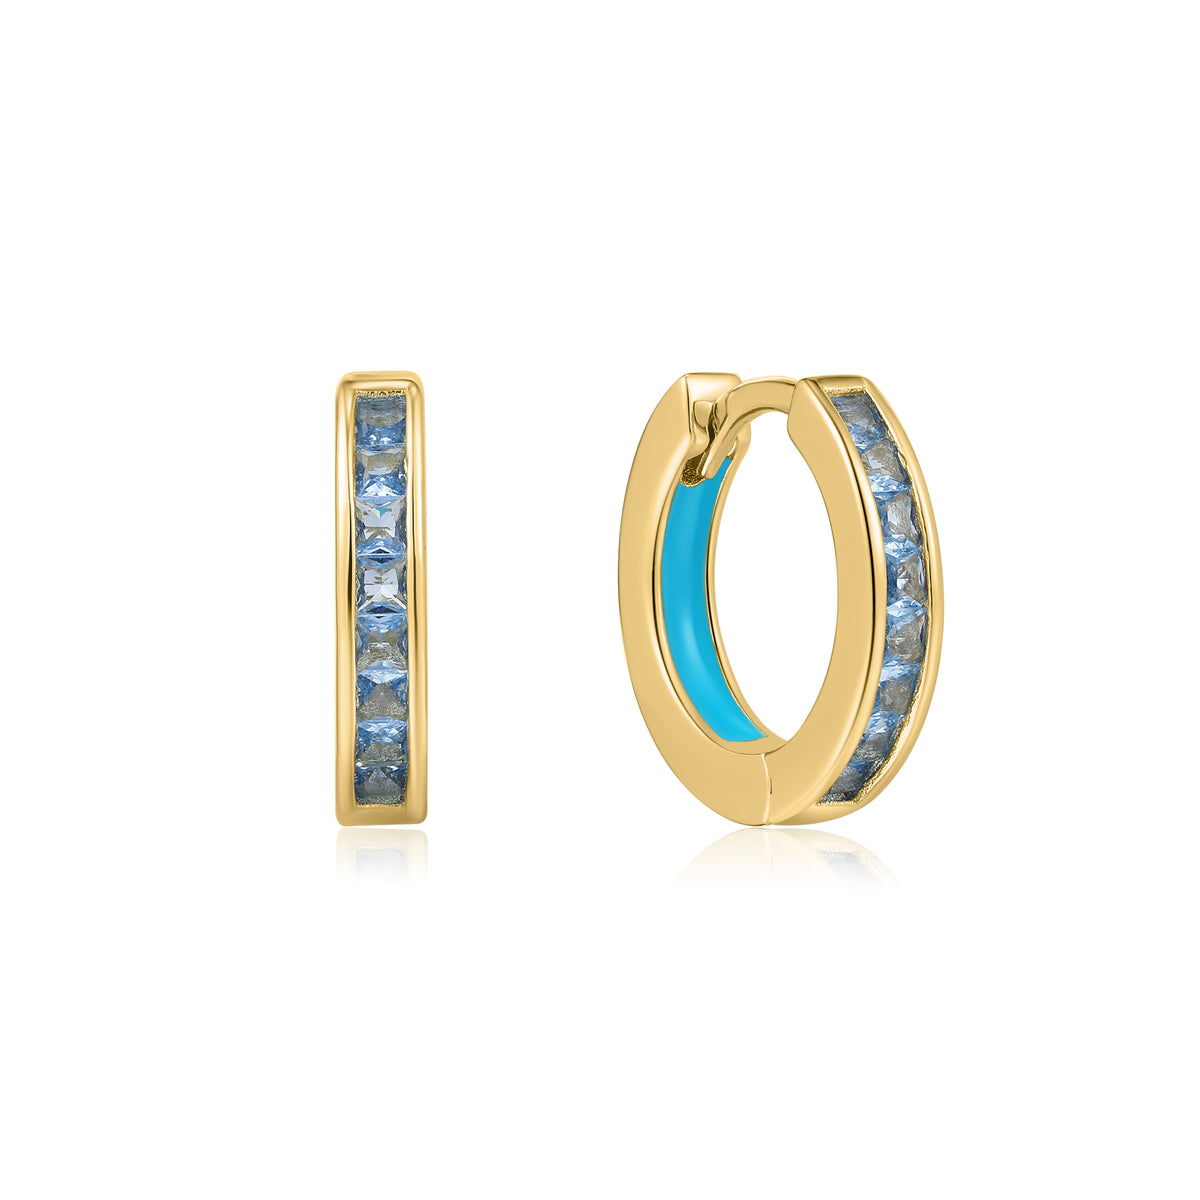 Cardea | Cremini Earrings | 925 Silver | Blue Enamel & Blue CZ | 14K Gold Plated